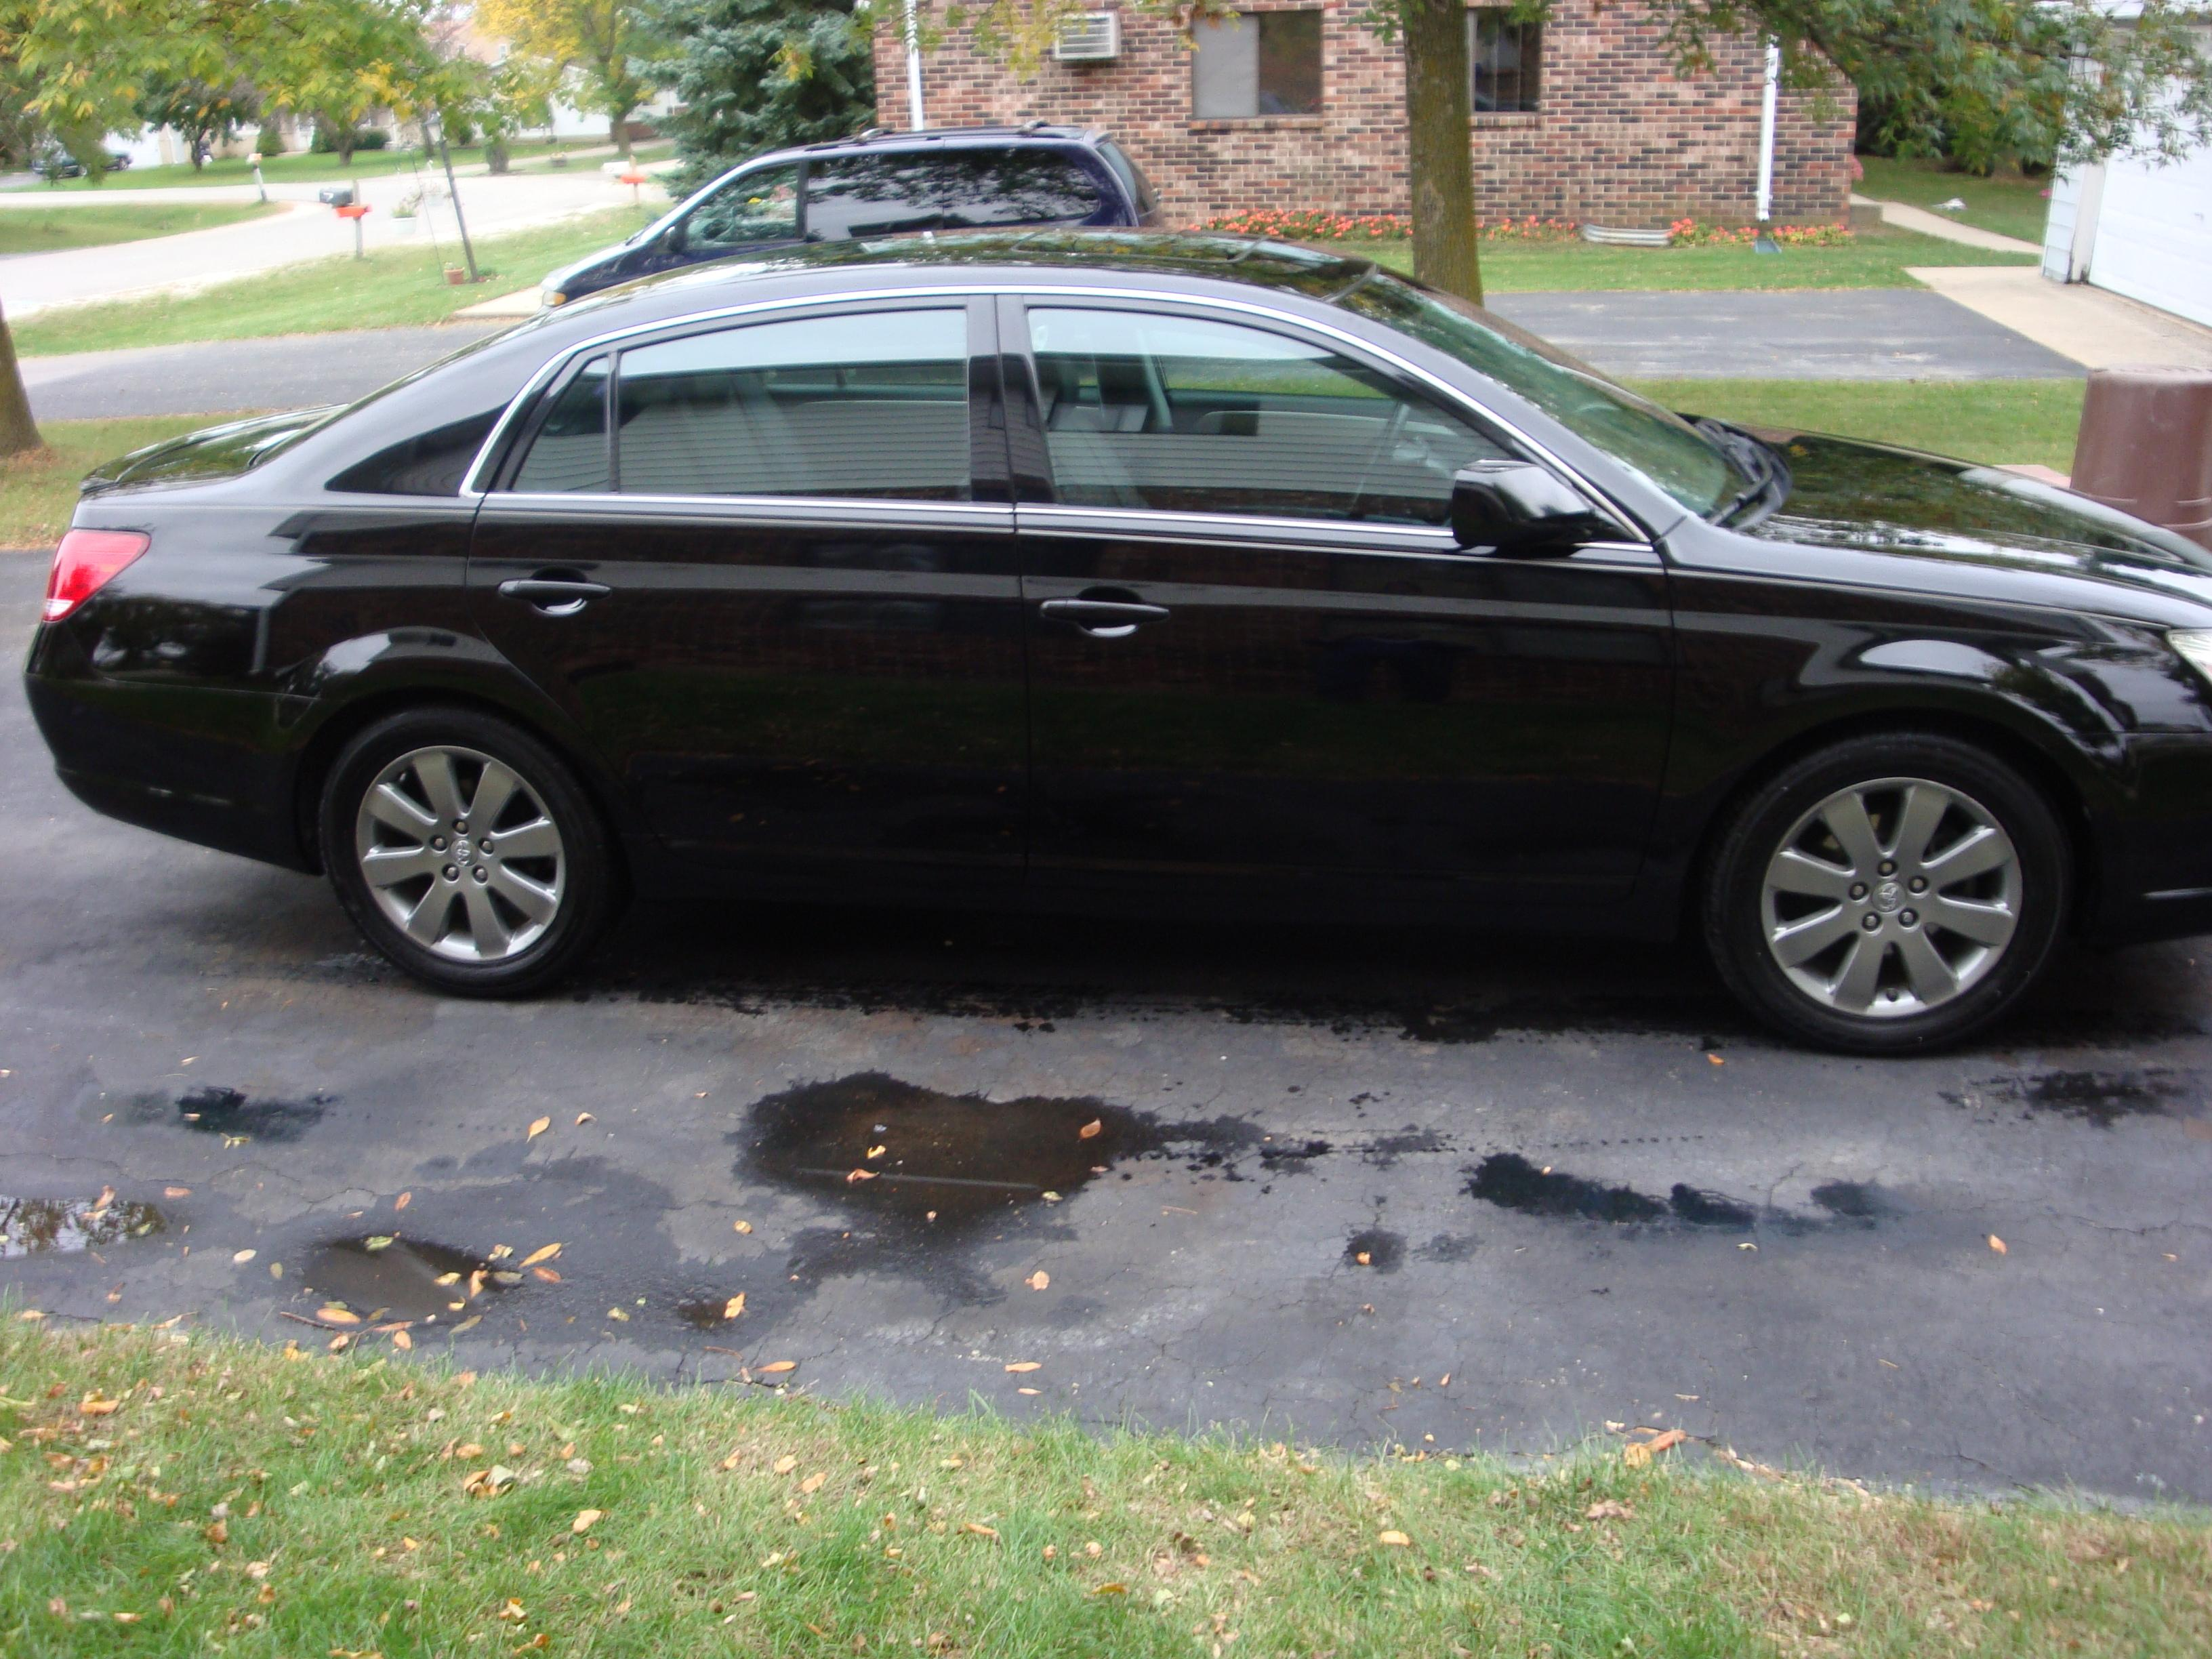 2007 toyota avalon black 200 interior and exterior images. Black Bedroom Furniture Sets. Home Design Ideas